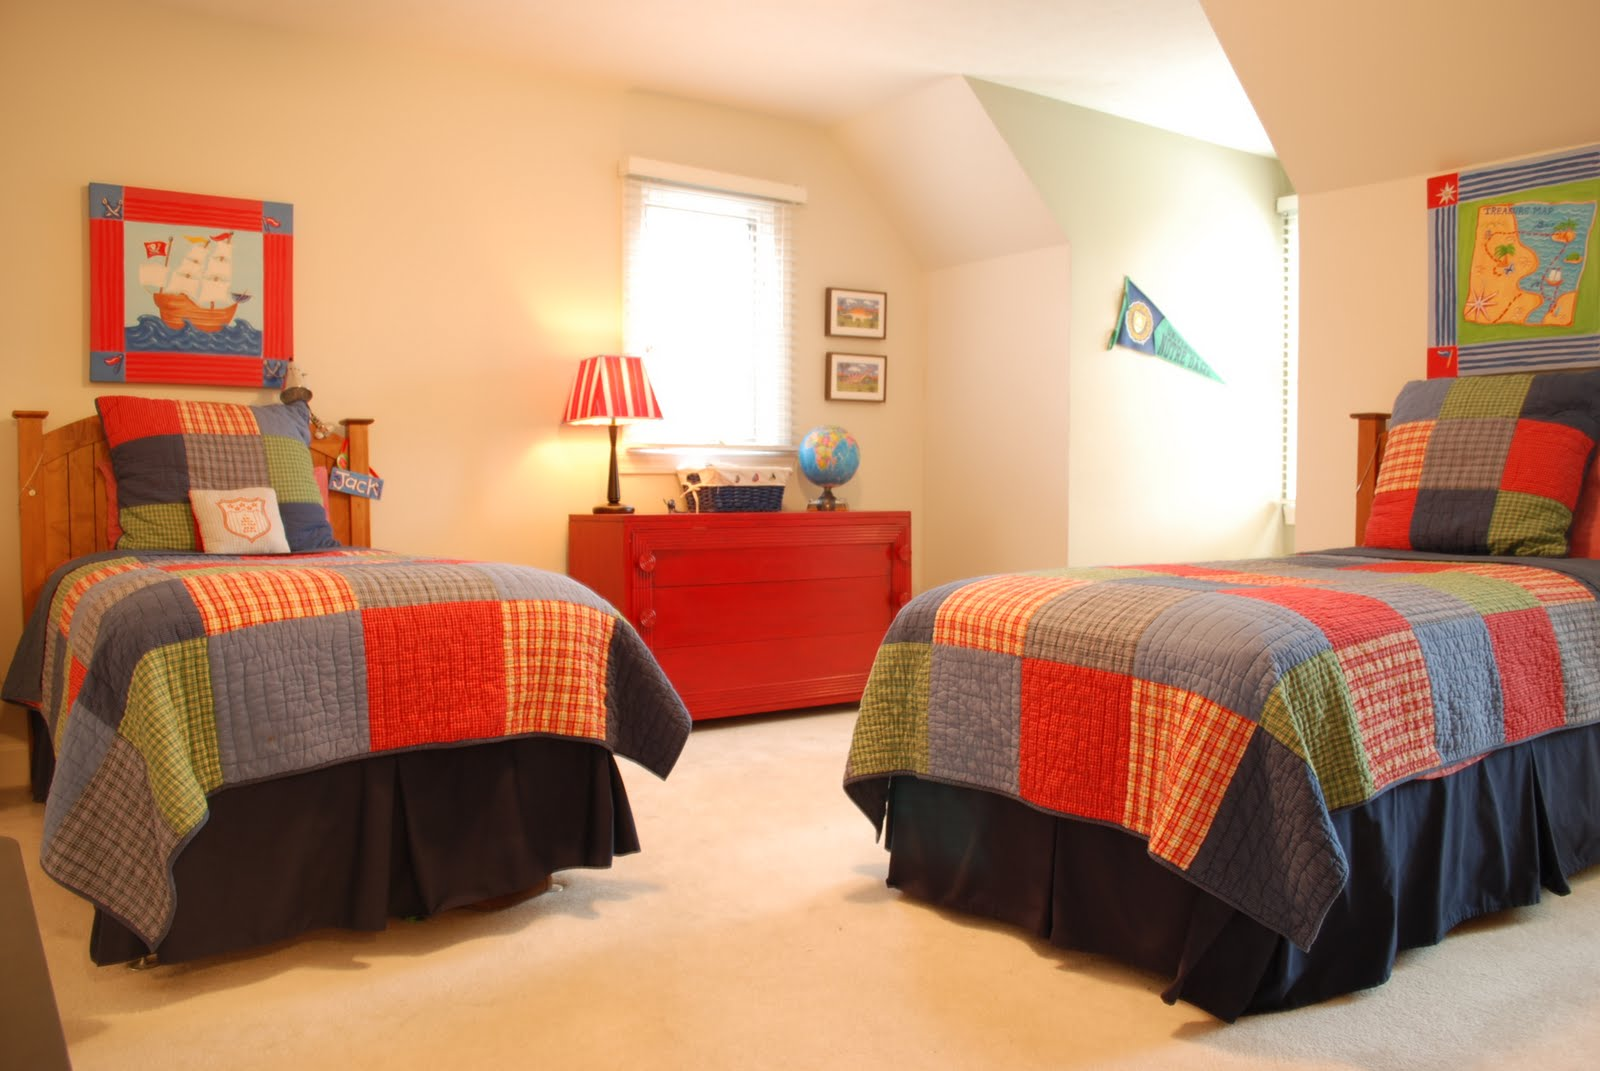 Sweet chaos home boys bedroom for Decorating boys bedroom ideas photos